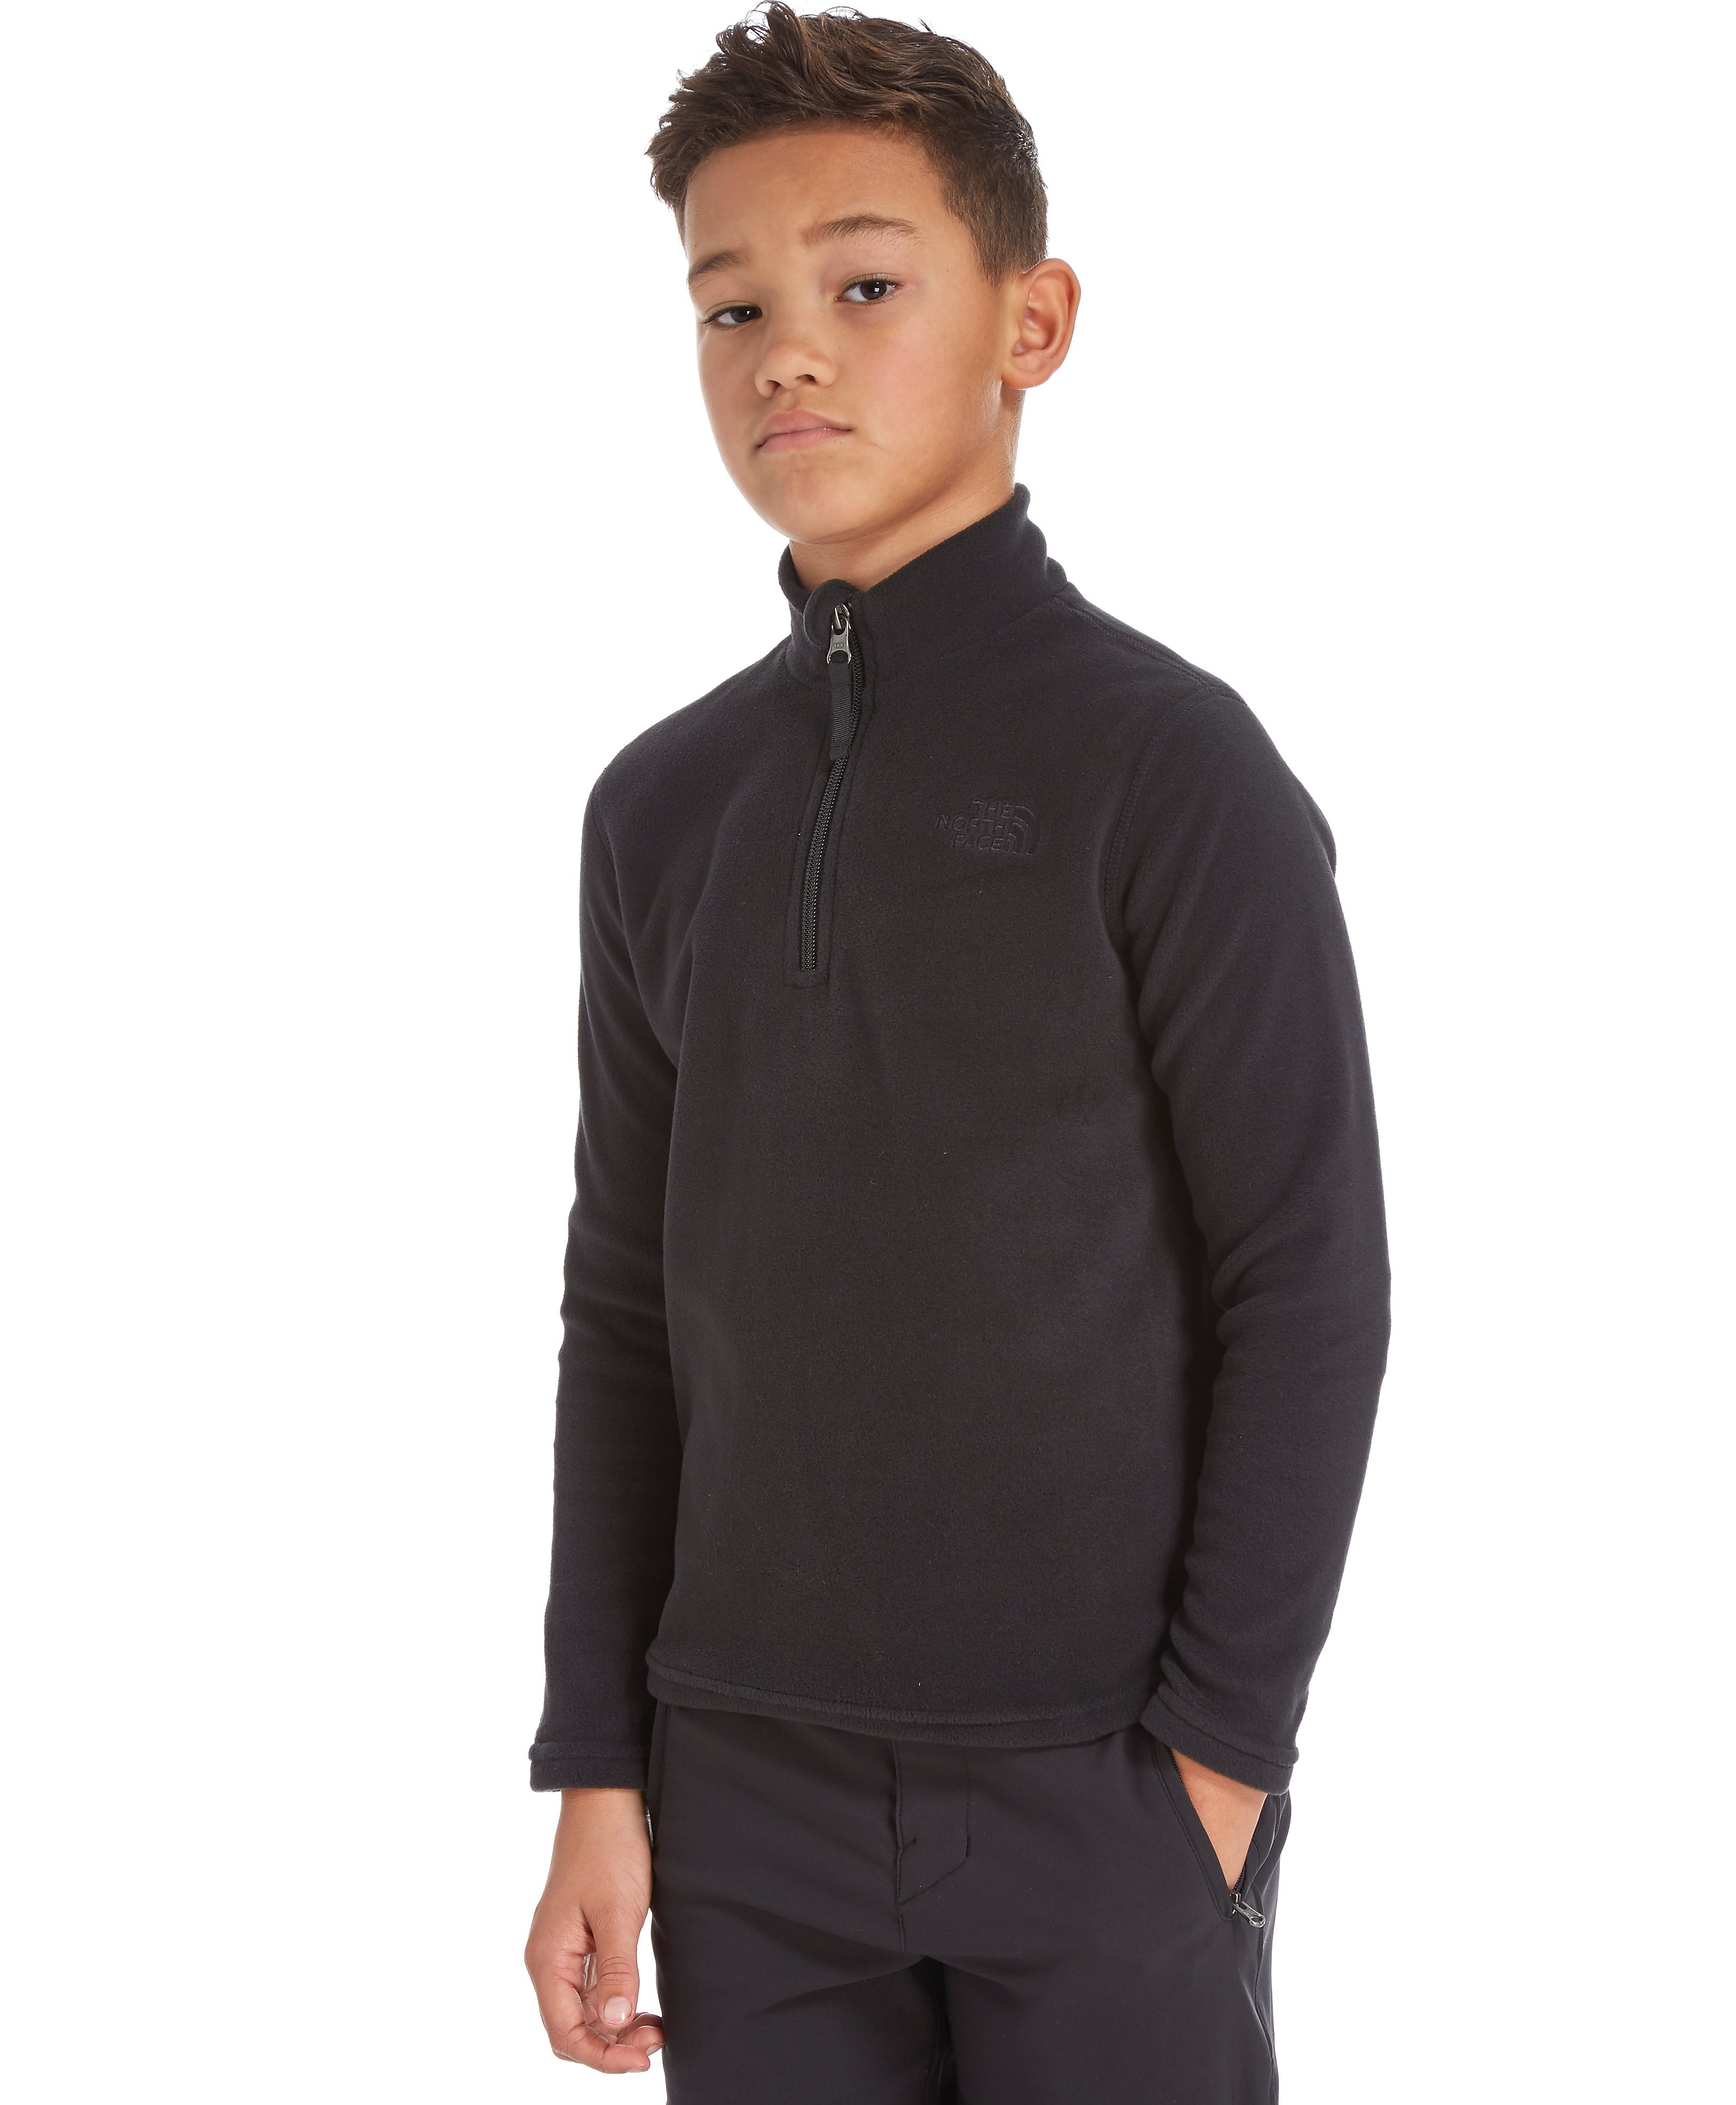 The North Face 100 Glacier 1/4 Zip-jas voor tieners